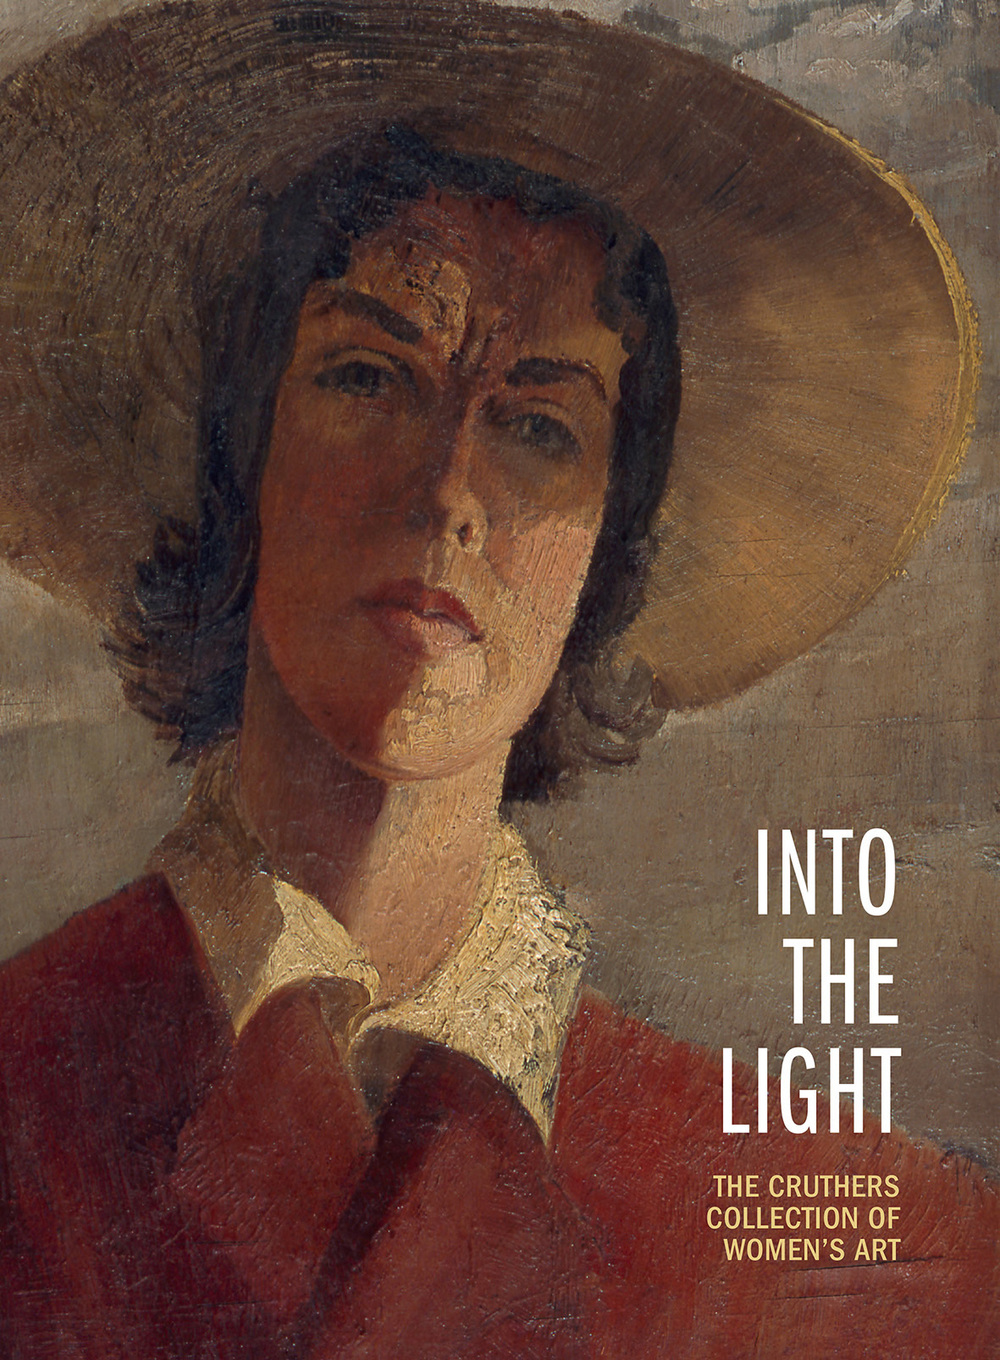 Cover of Into the Light - The Cruthers Collection of Women's Art,University of Western Australia Publishing, 2012, pp 130